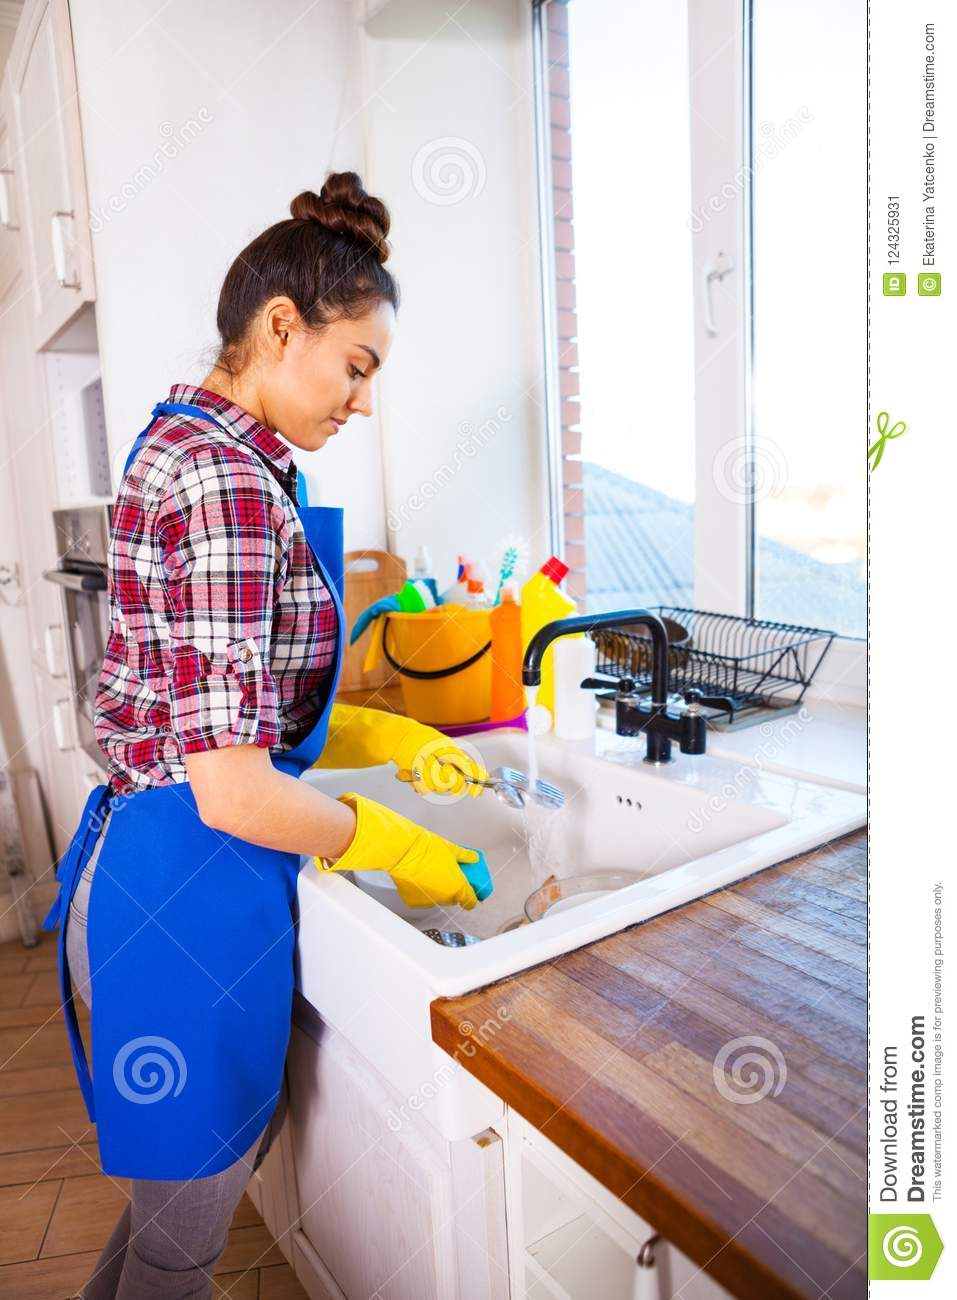 Suggest Young girl cleaning house